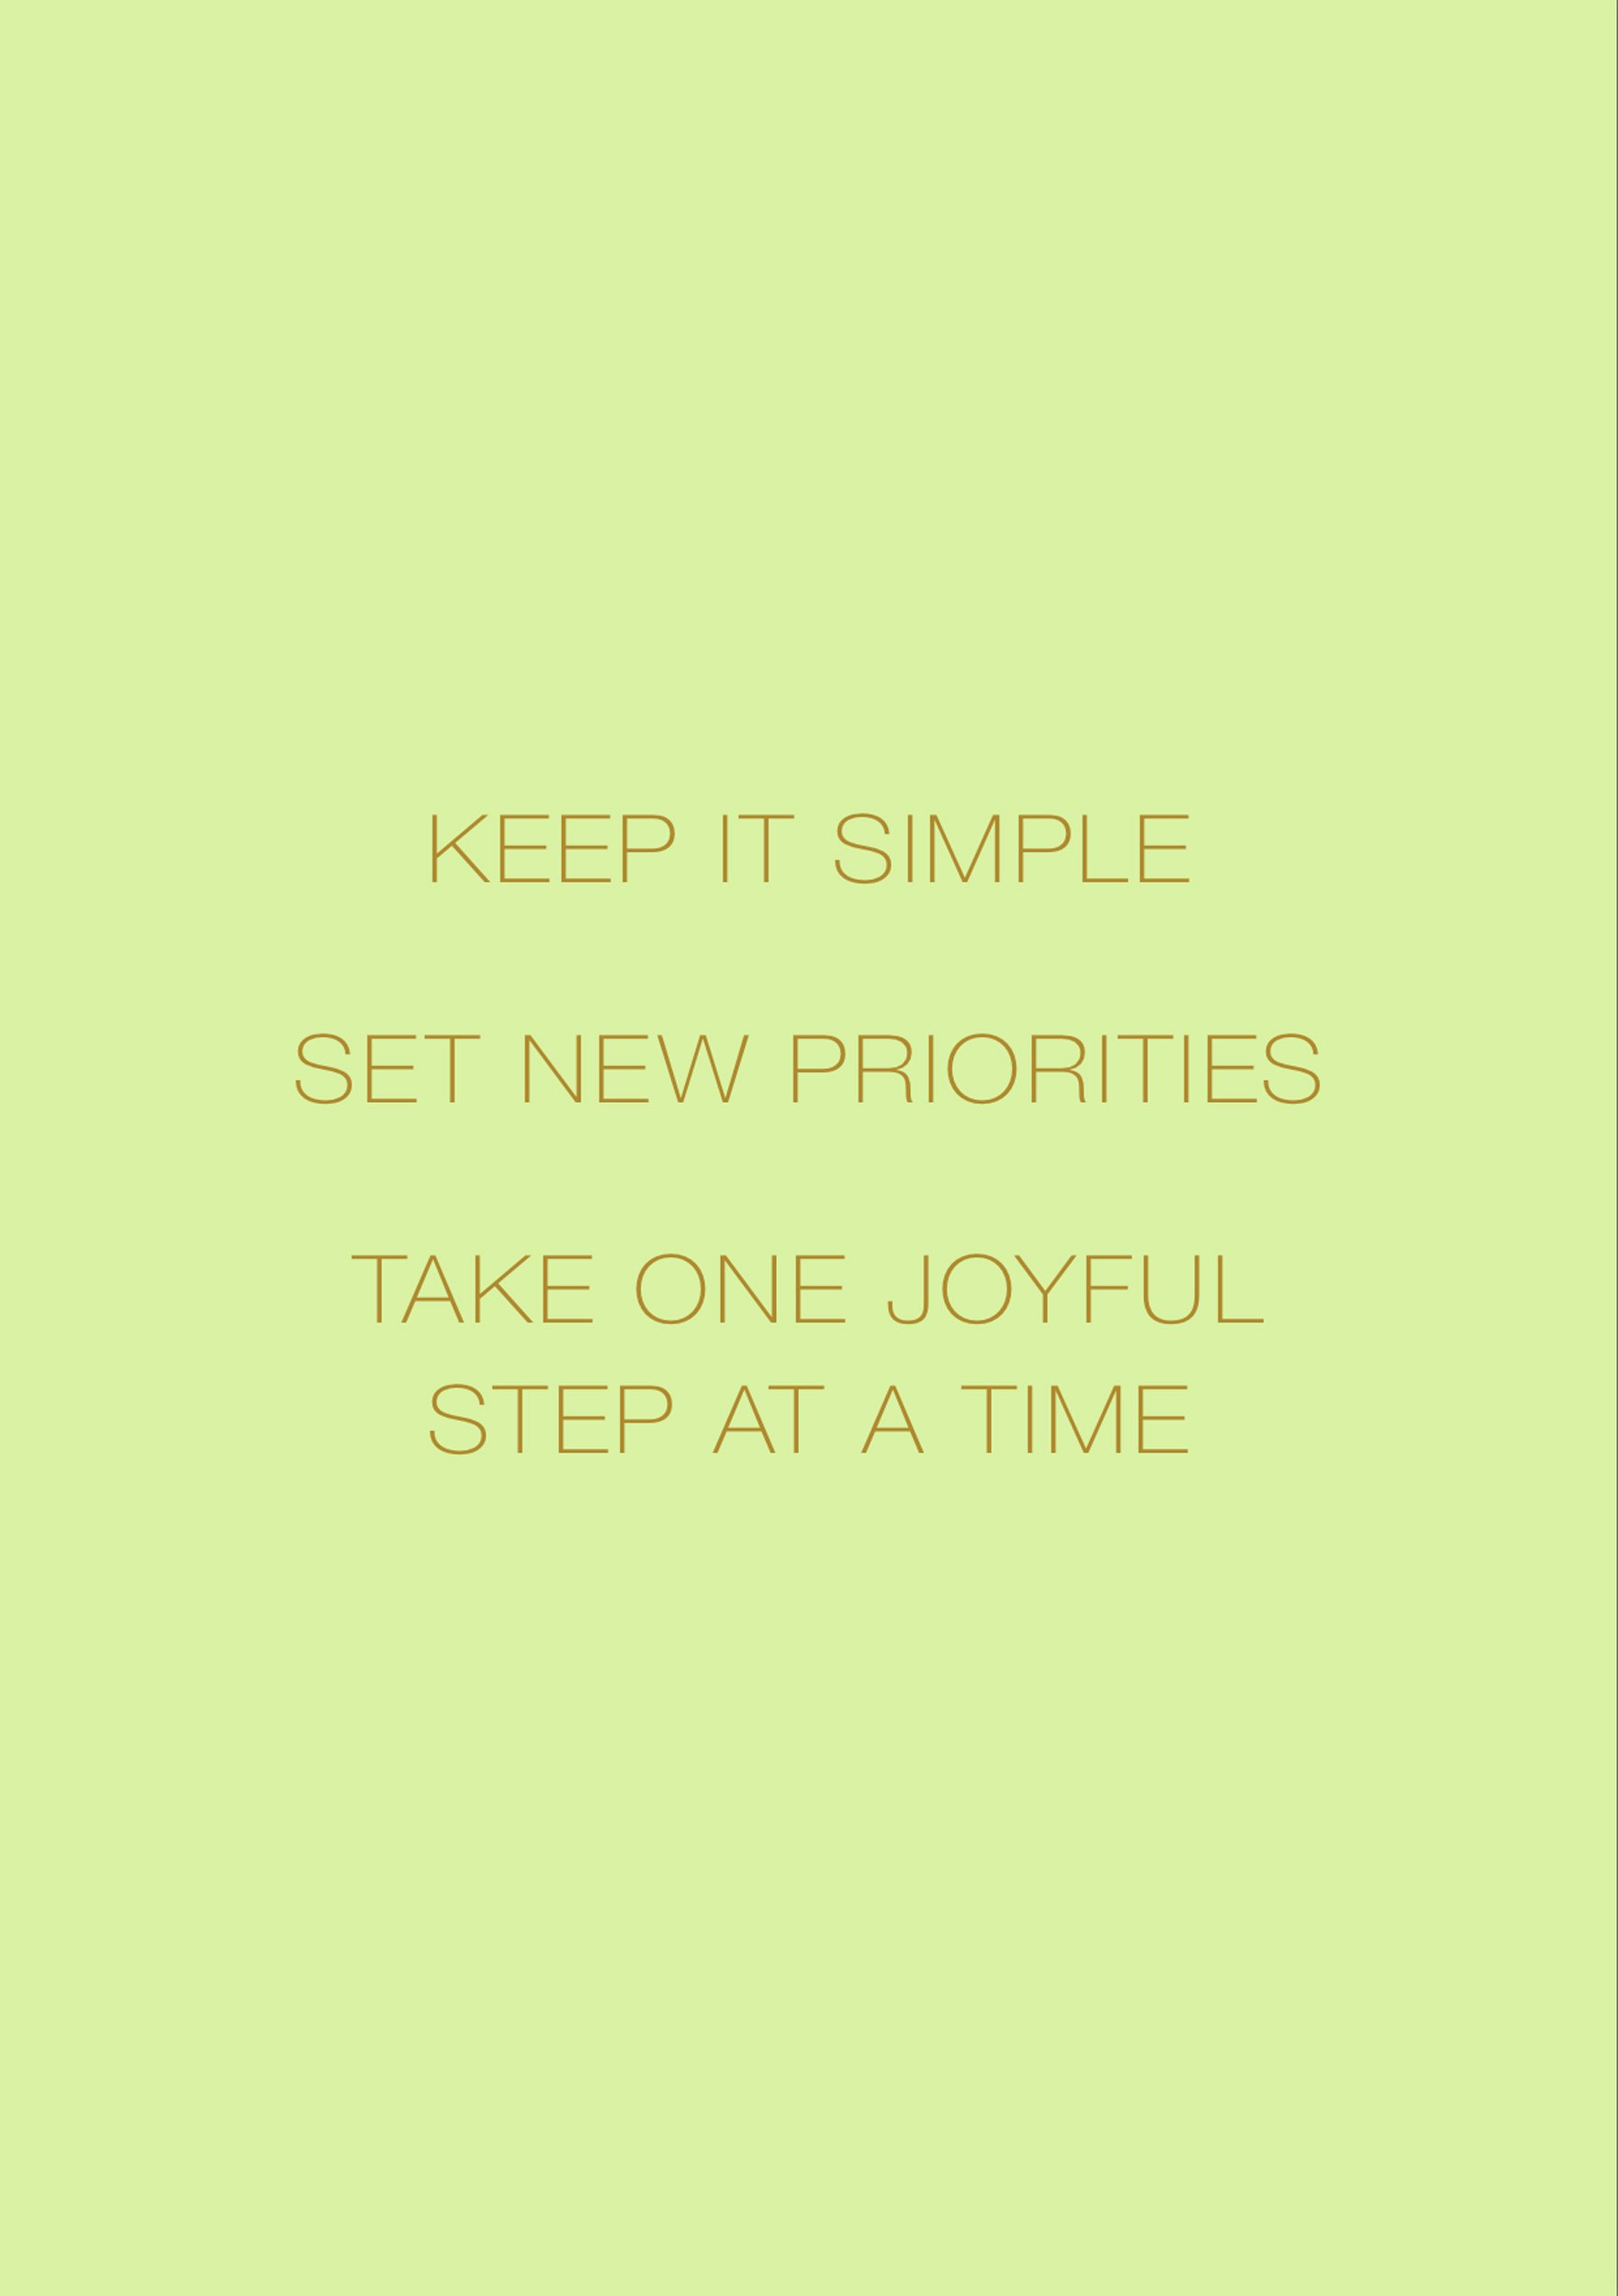 Simplicity Mantra:Keep It Simple,Set New Priorities,Take One Joyful Step at a Time